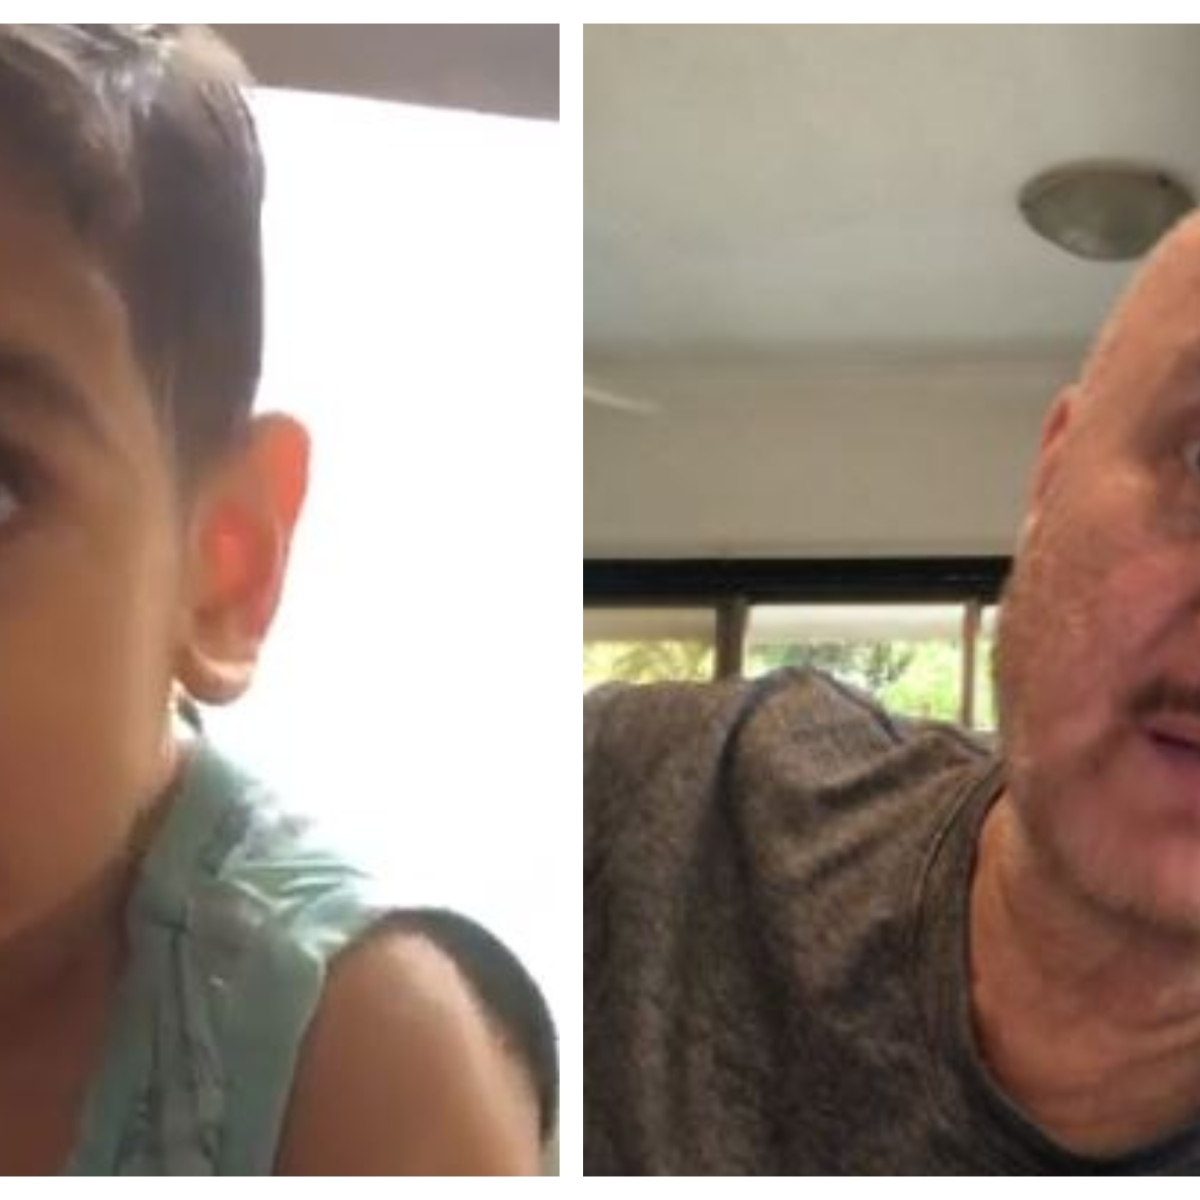 'Modi Uncle said so': Anupam Kher advocates social distancing with a kid's adorable video